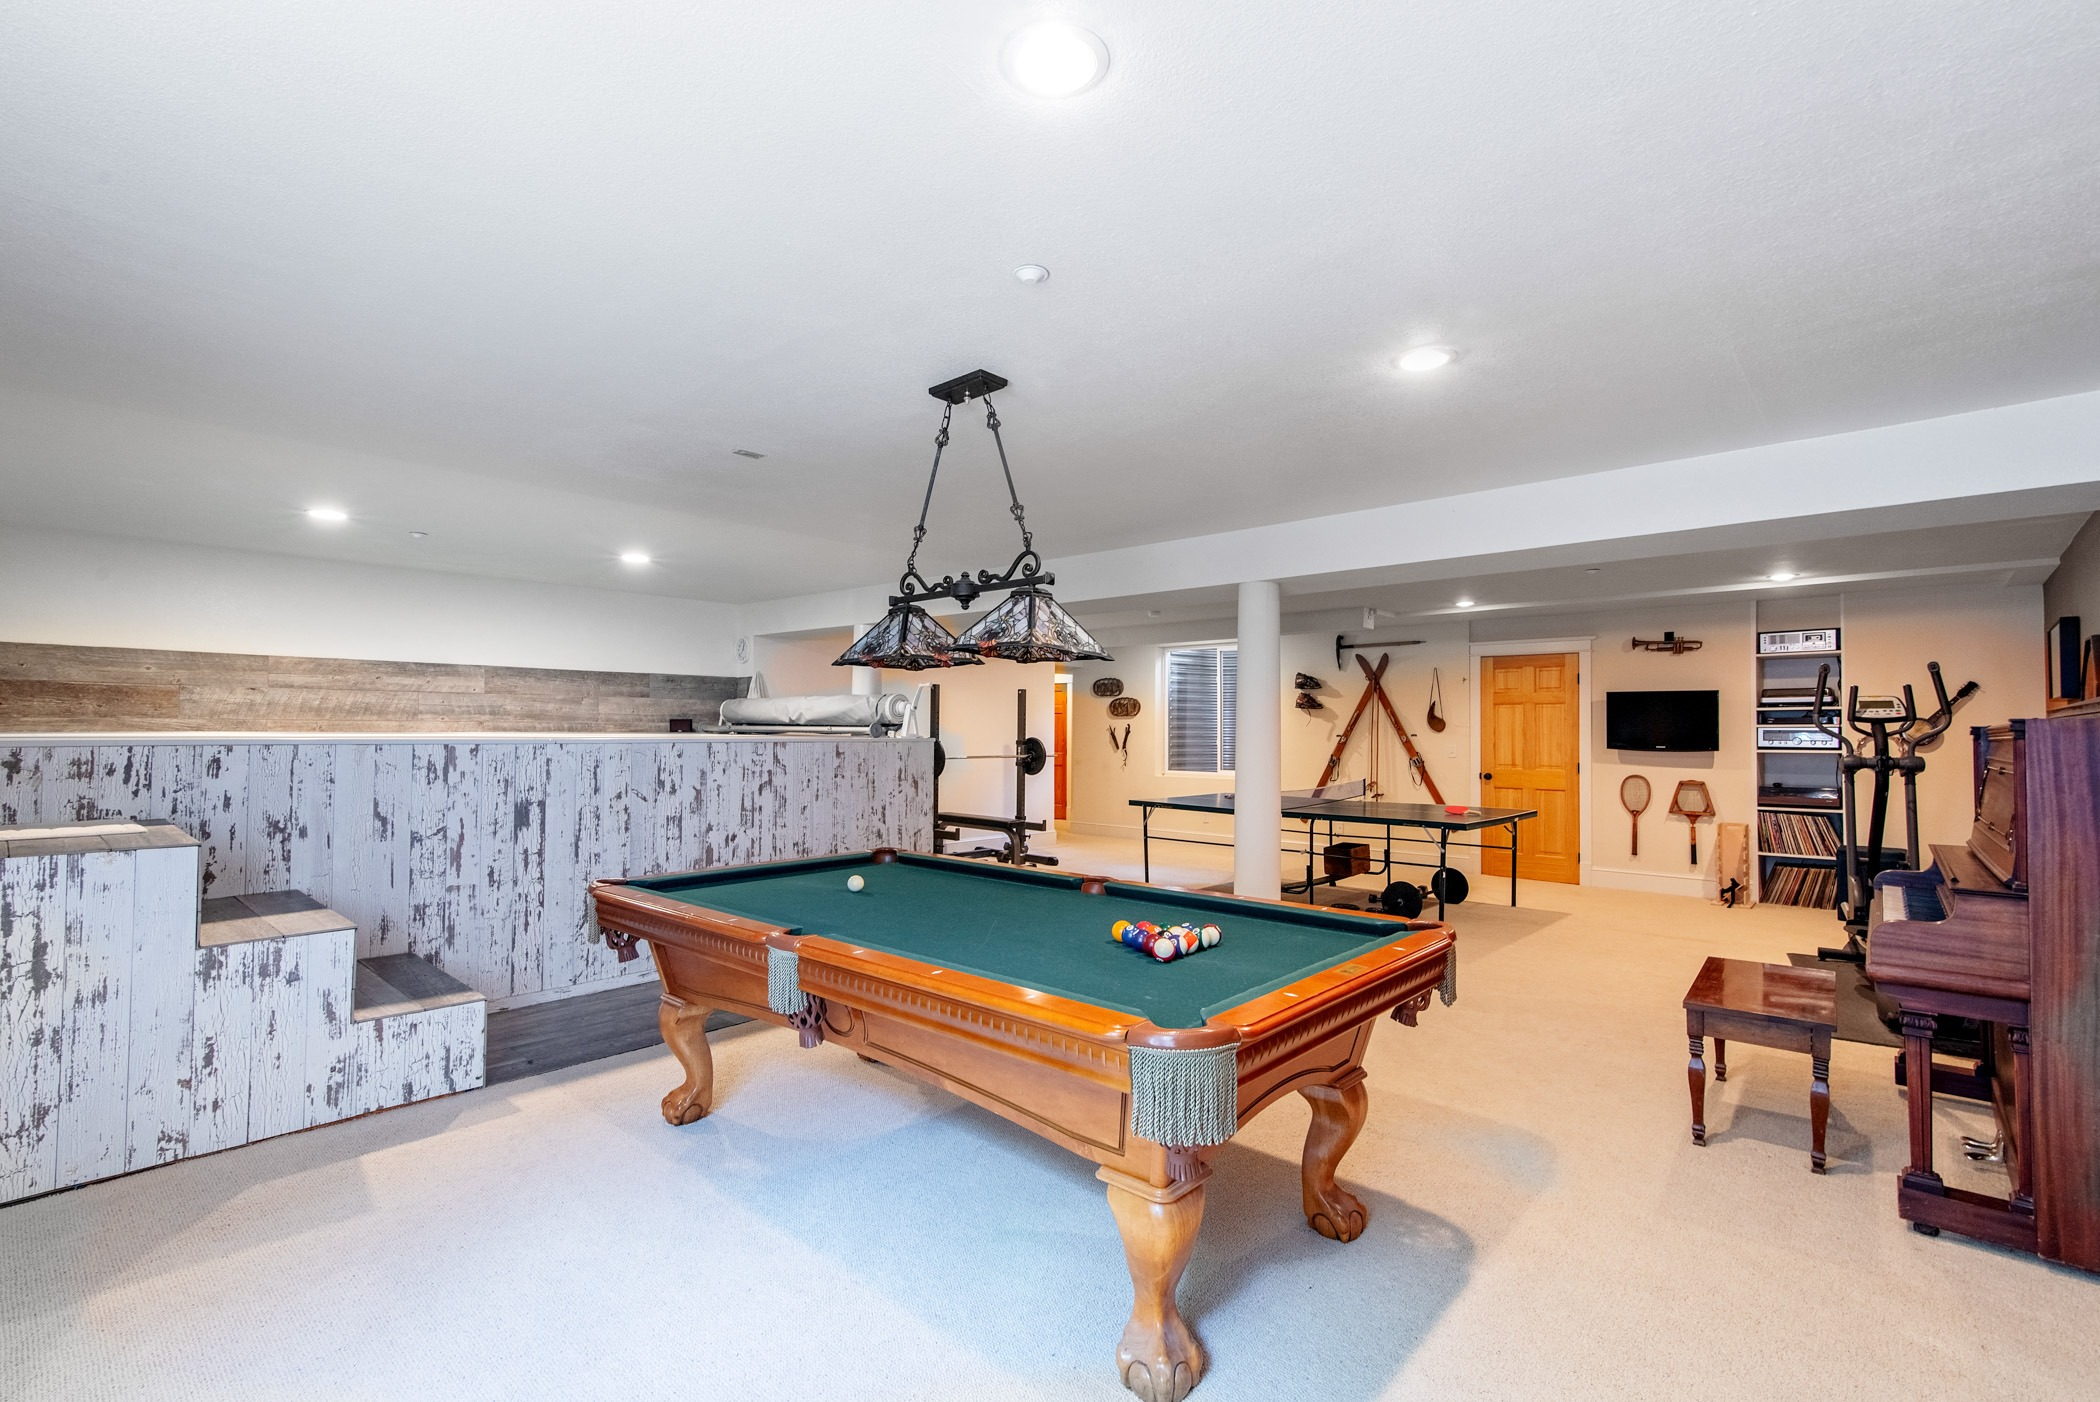 Tons of room for recreation